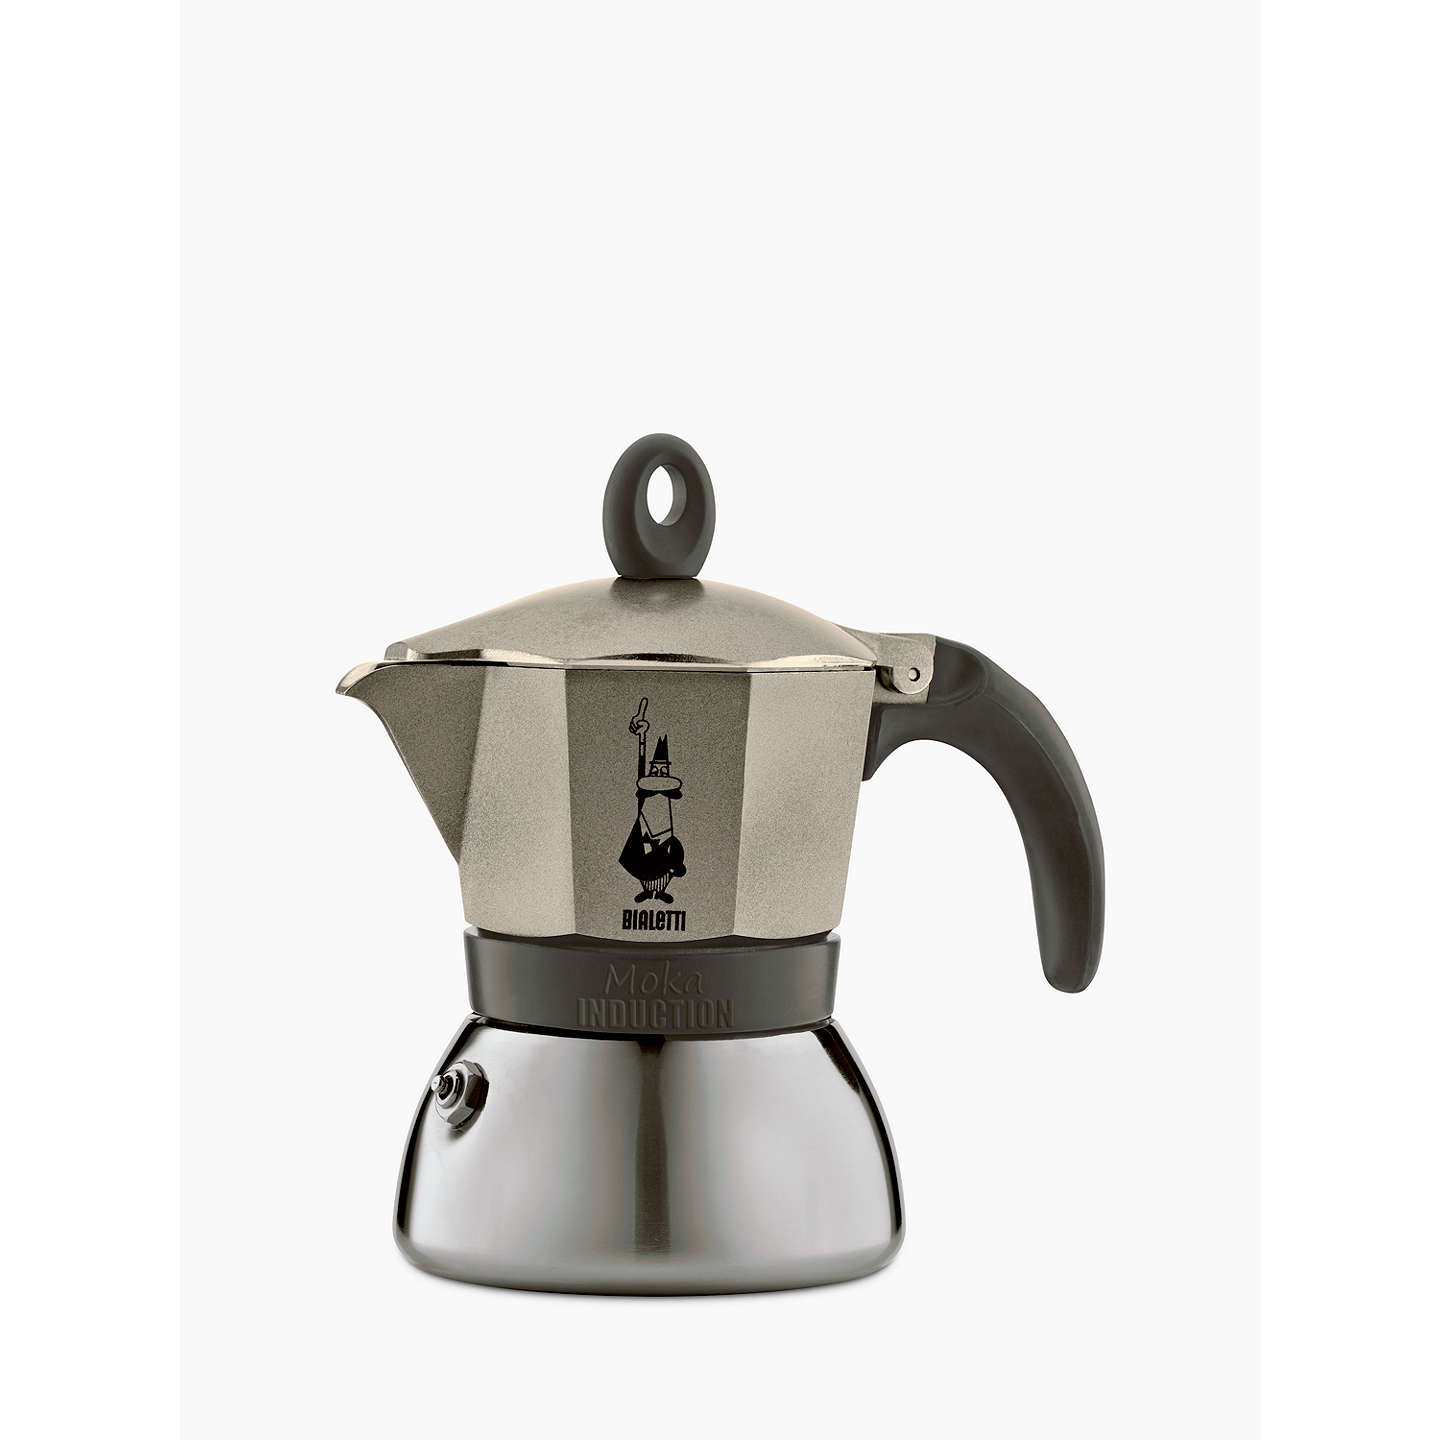 bialetti moka induction coffee maker 6 cup at john lewis. Black Bedroom Furniture Sets. Home Design Ideas